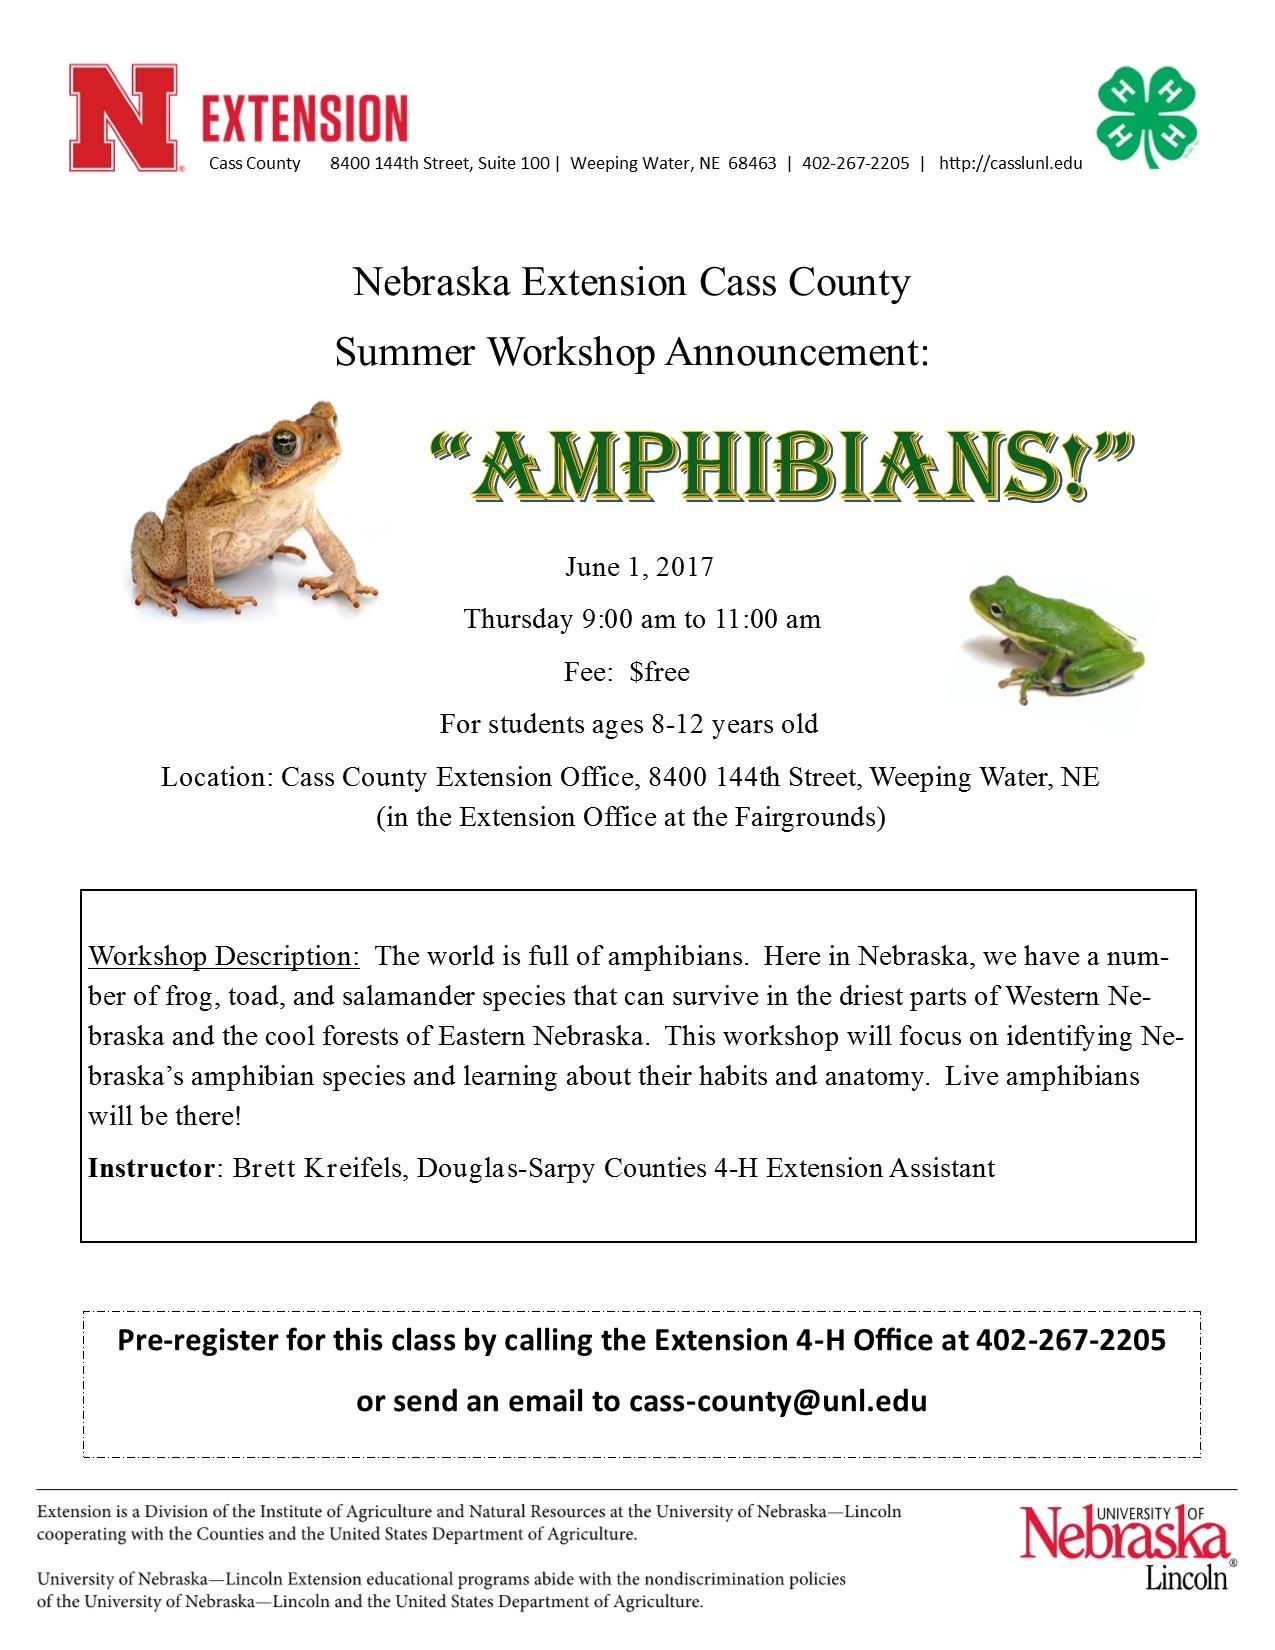 Amphibians workshop flyer